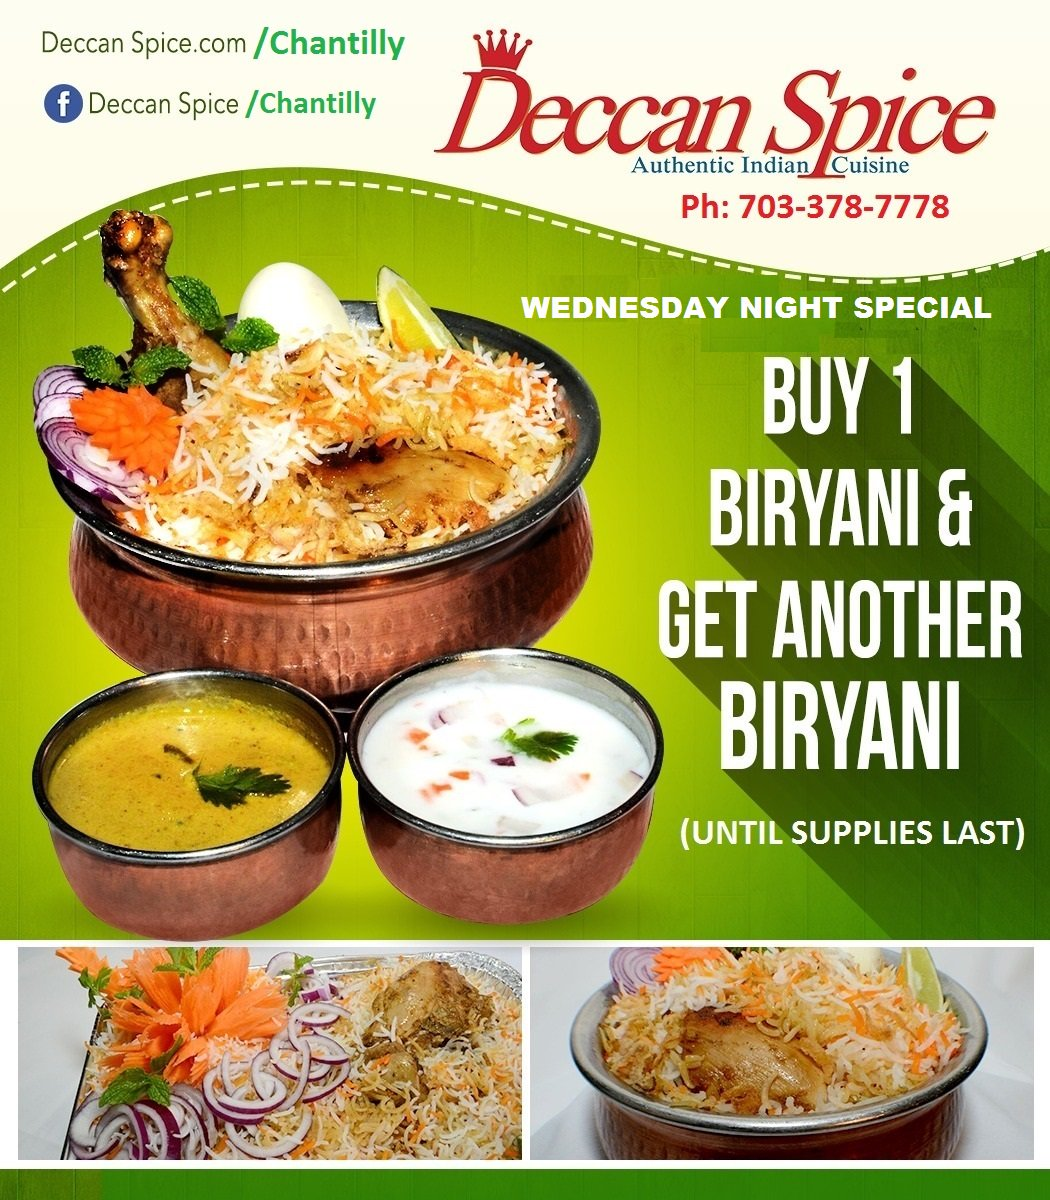 Deccan E Authentic Indian Restaurant On Twitter 1 Get Biryani Special Today Chantilly Va Call 703 378 7778